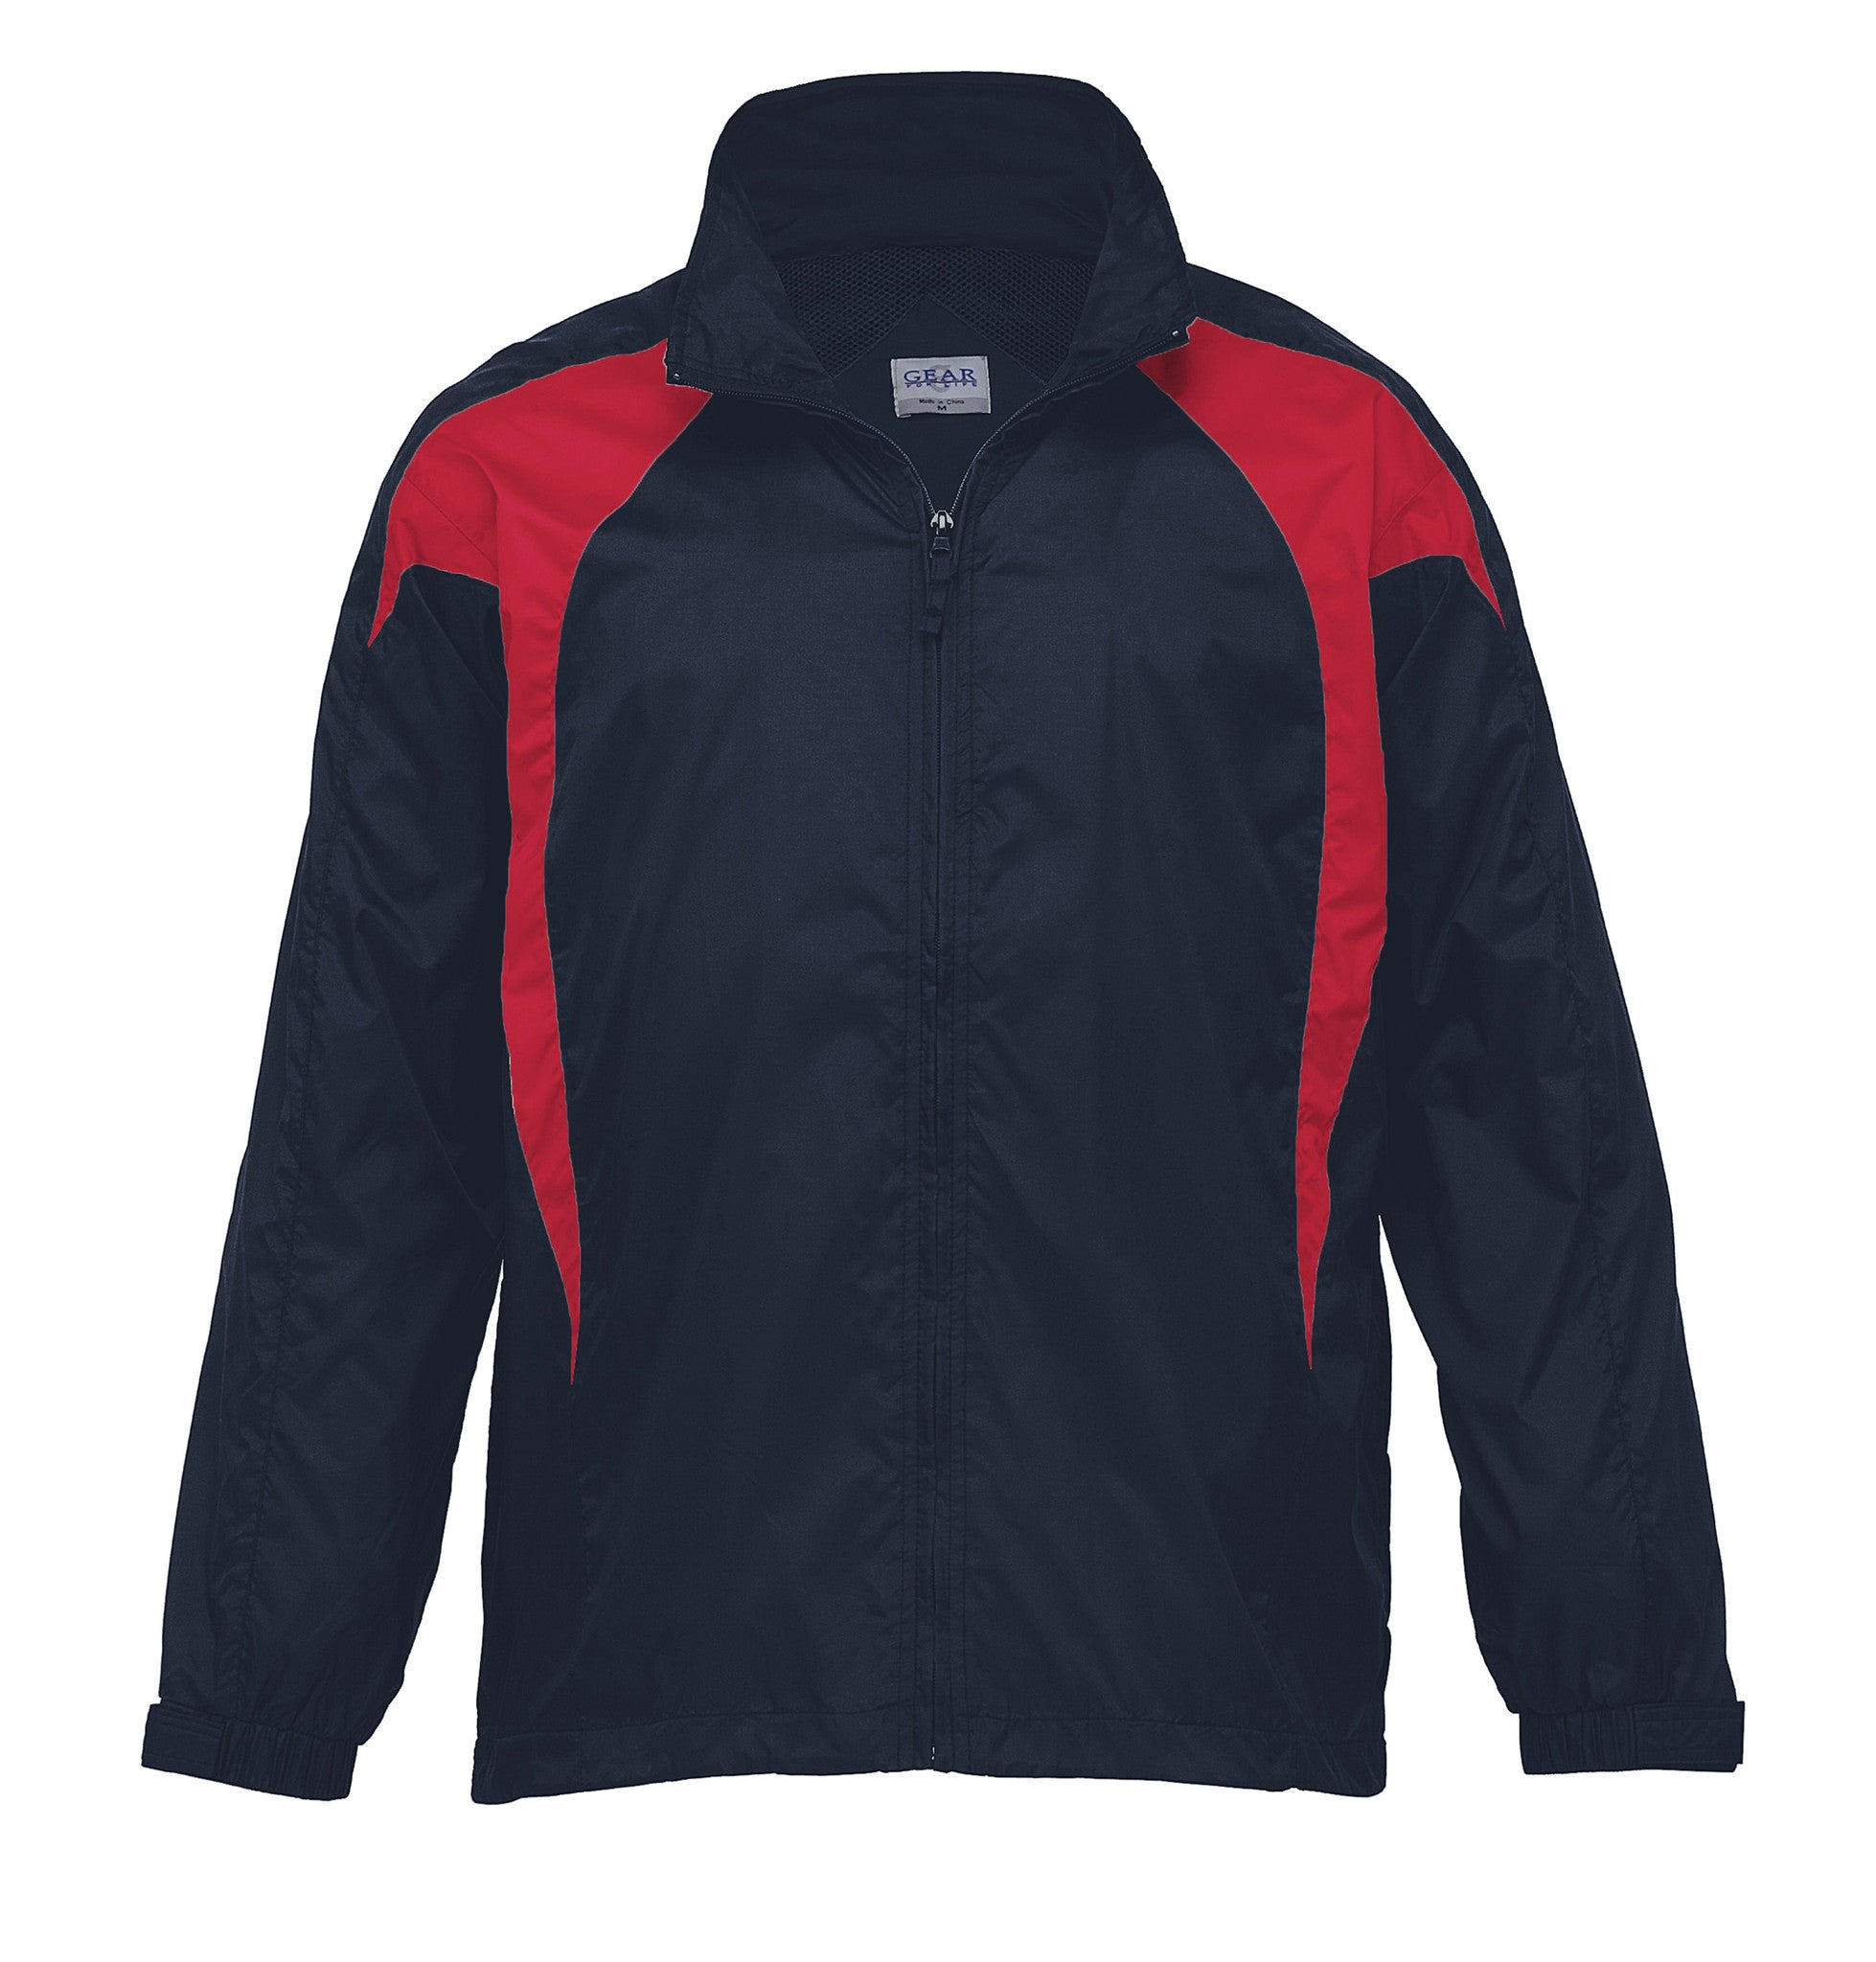 Gear For Life Spliced Zenith Jacket(2nd 6 Colours)